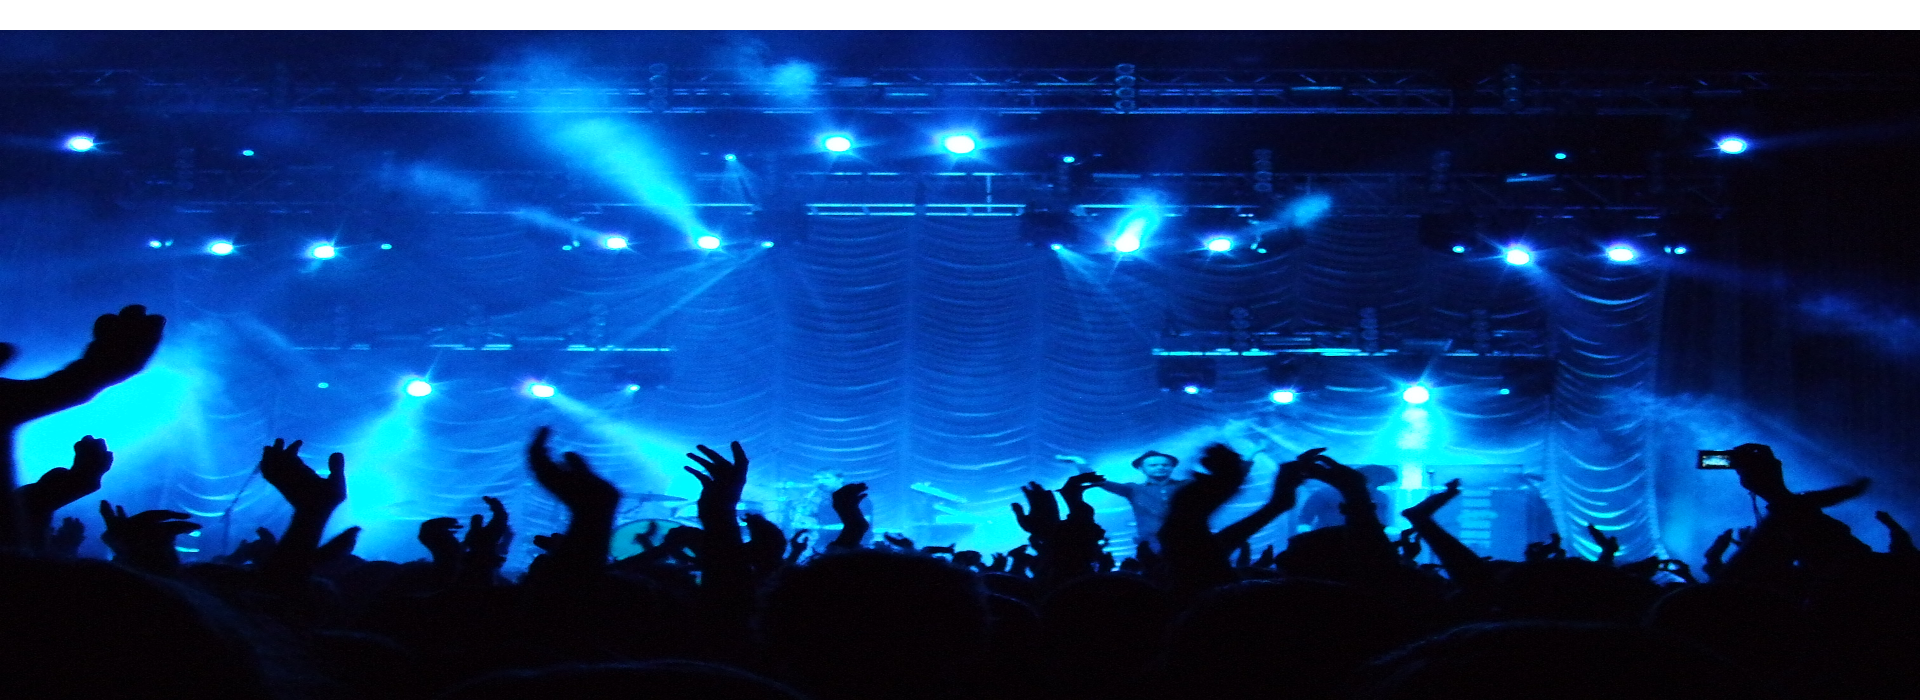 Concerts are always more fun when you arrive in style!  Book the A2B Transit limo for your trip 844.354.6622.